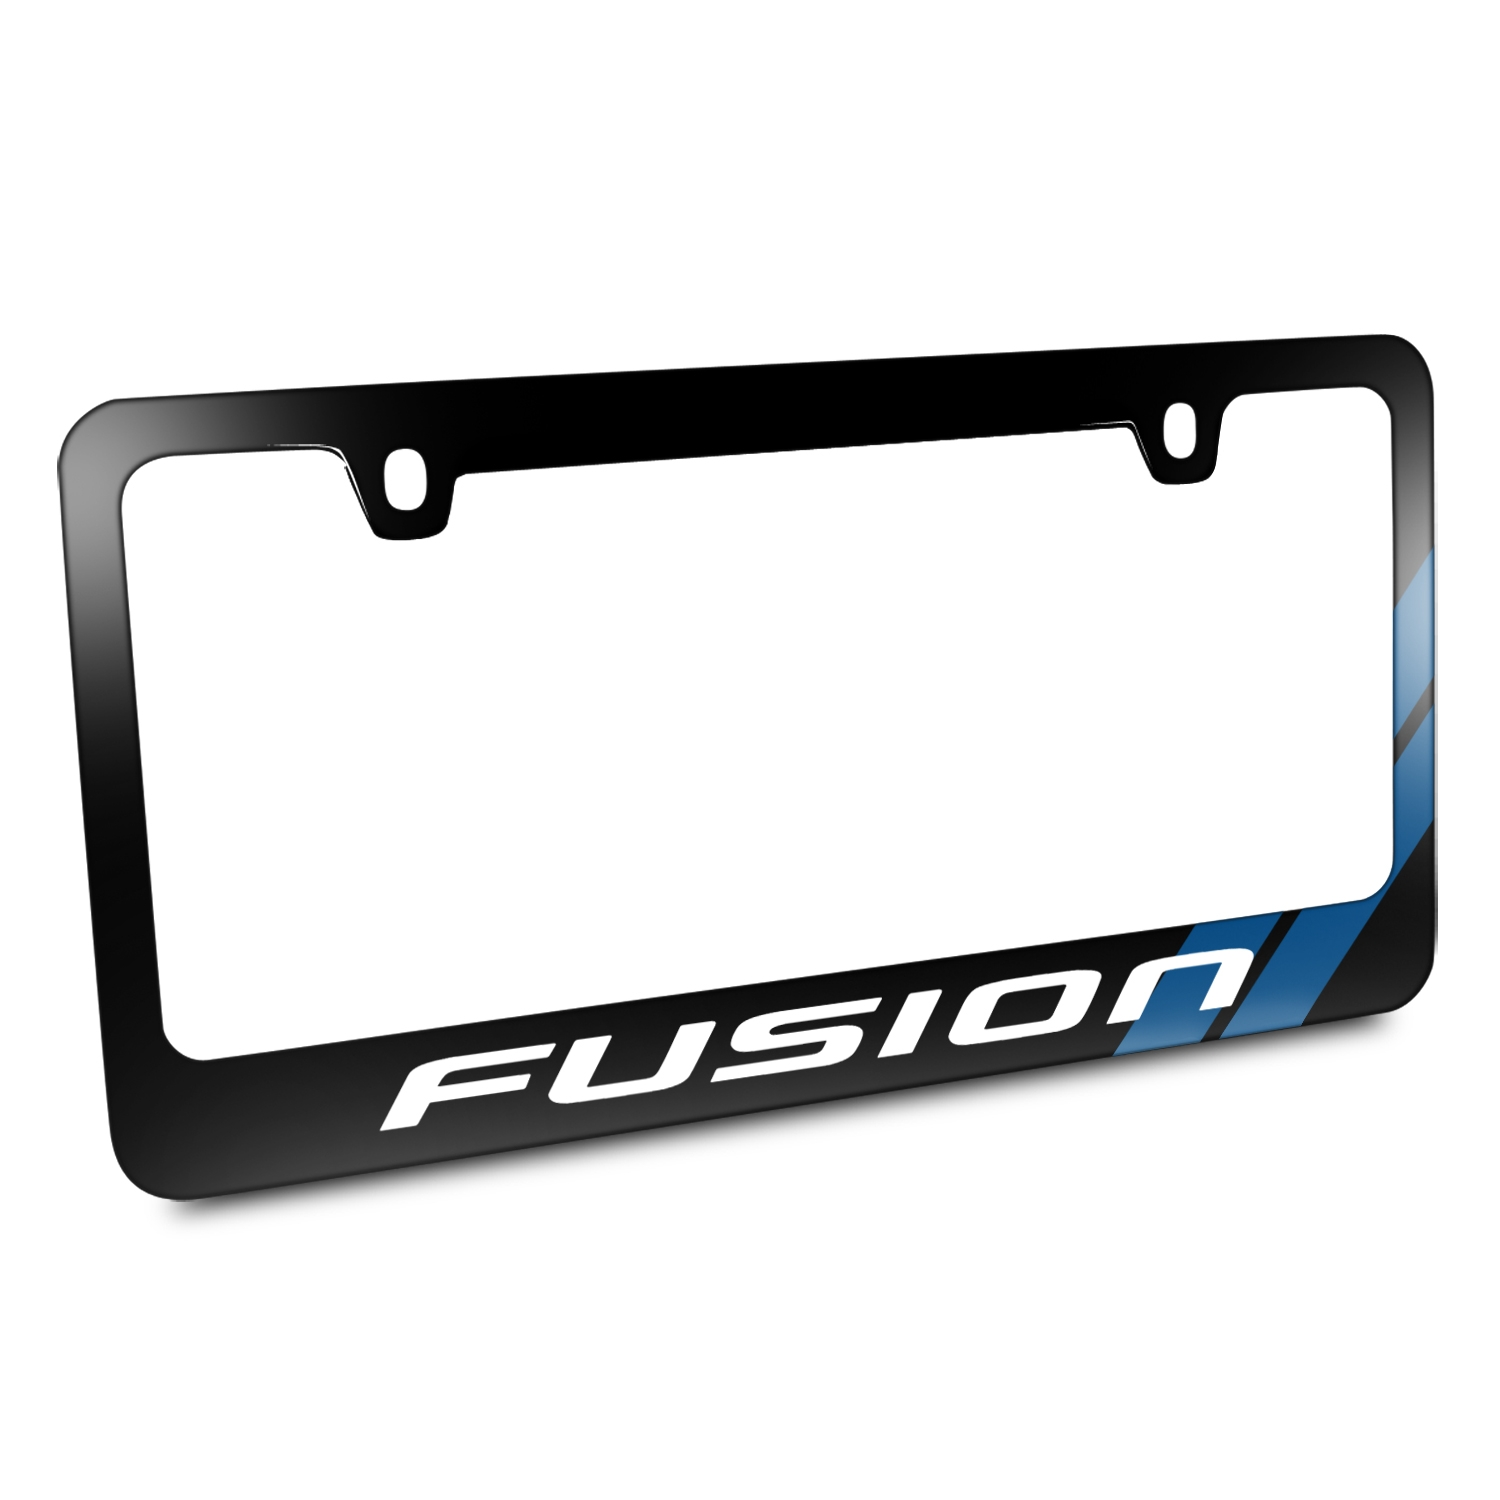 Ford Fusion Blue Sports Stripe Black Metal License Plate Frame